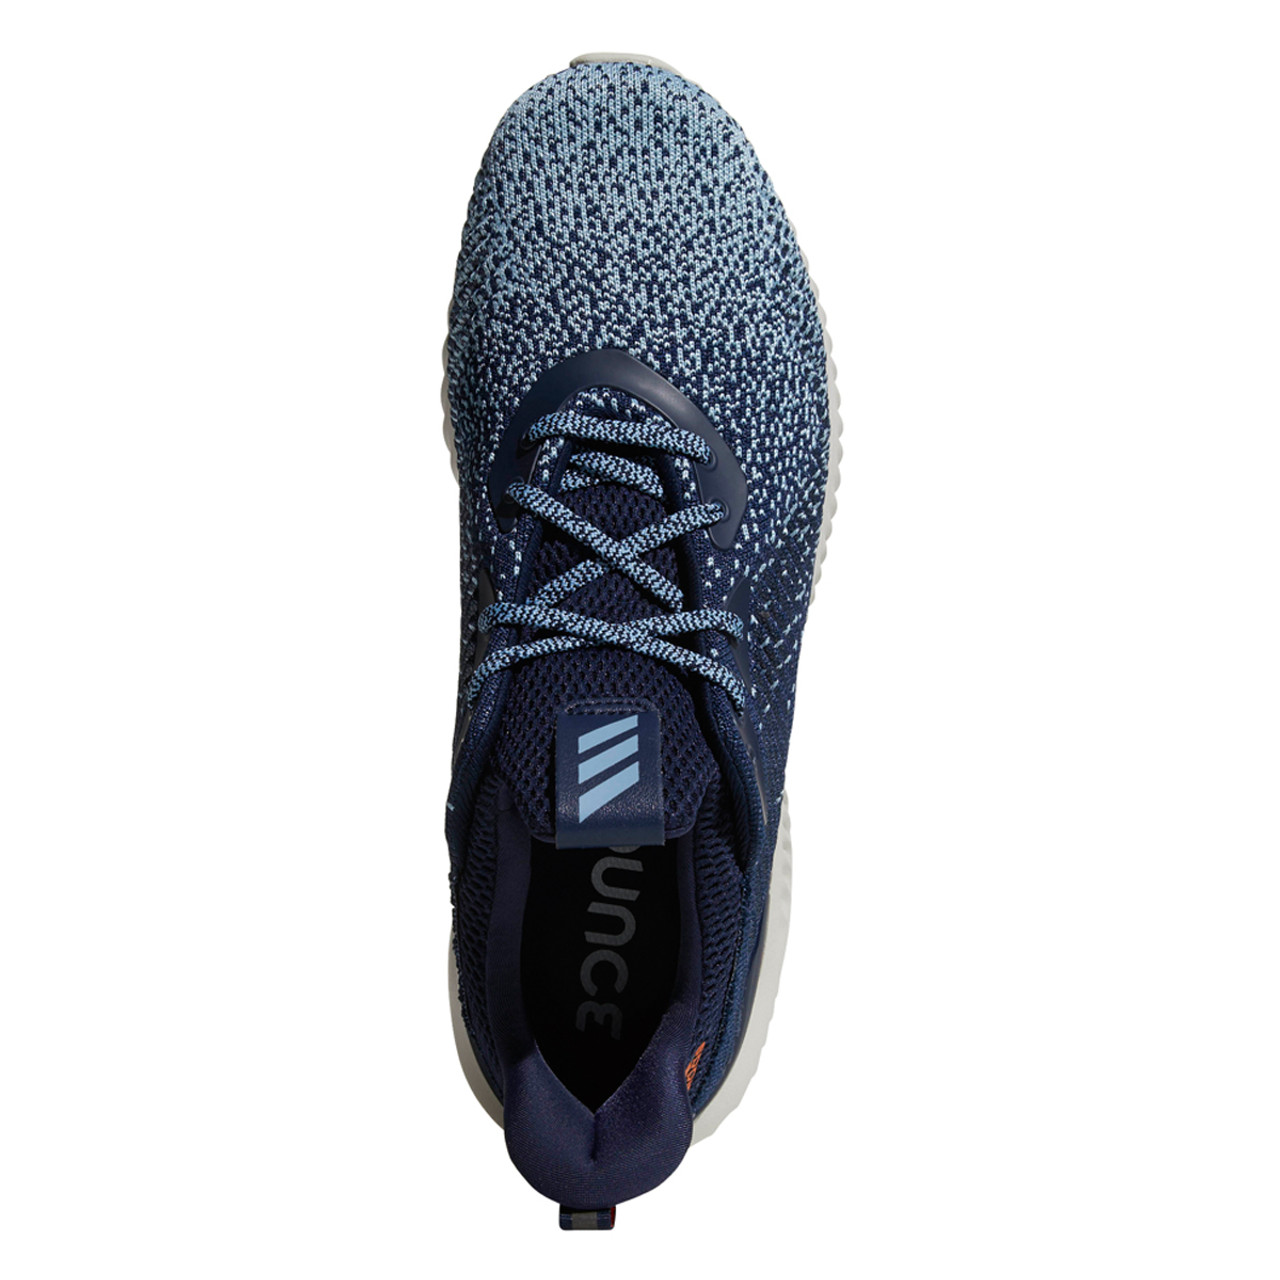 5c784fe5f927 ... Adidas Alphabounce CK Men s Sneakers CQ0407 ...